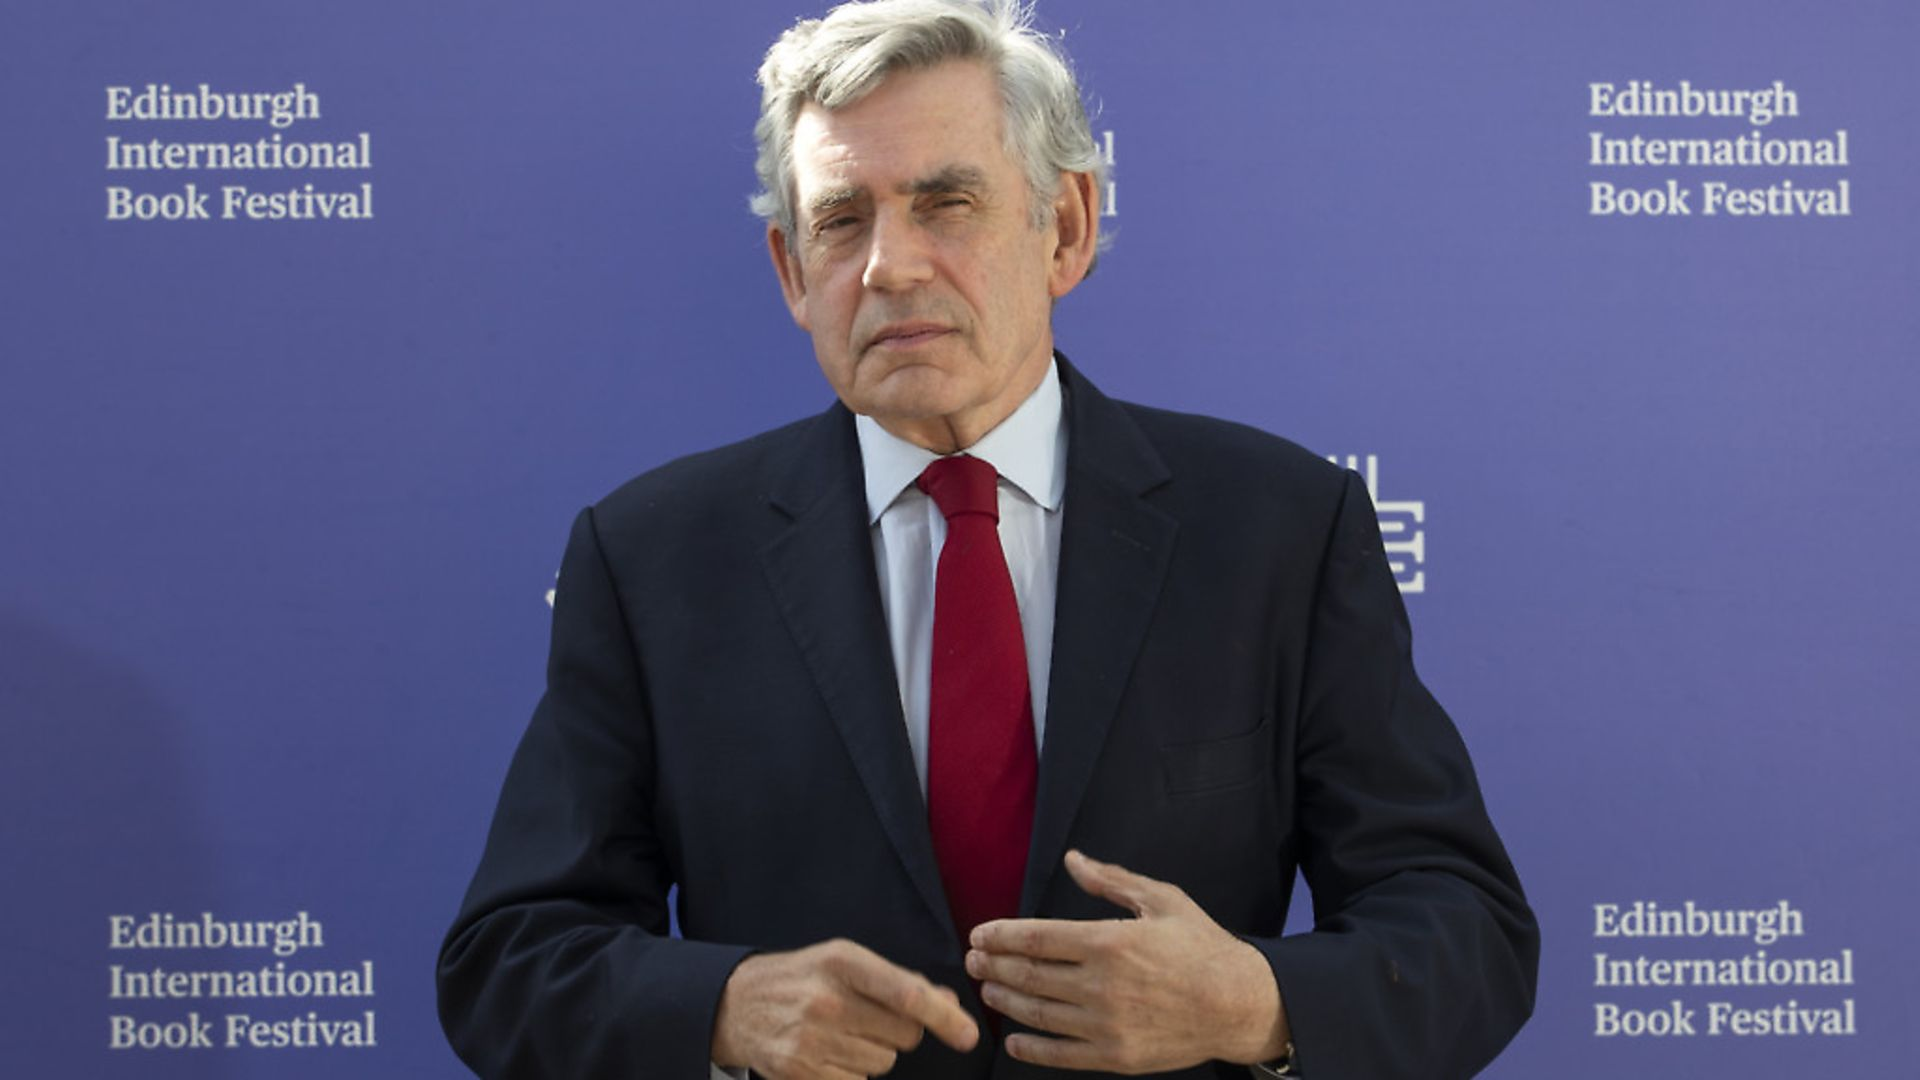 Former prime minister Gordon Brown. Photograph: Jane Barlow/PA. - Credit: PA Wire/PA Images